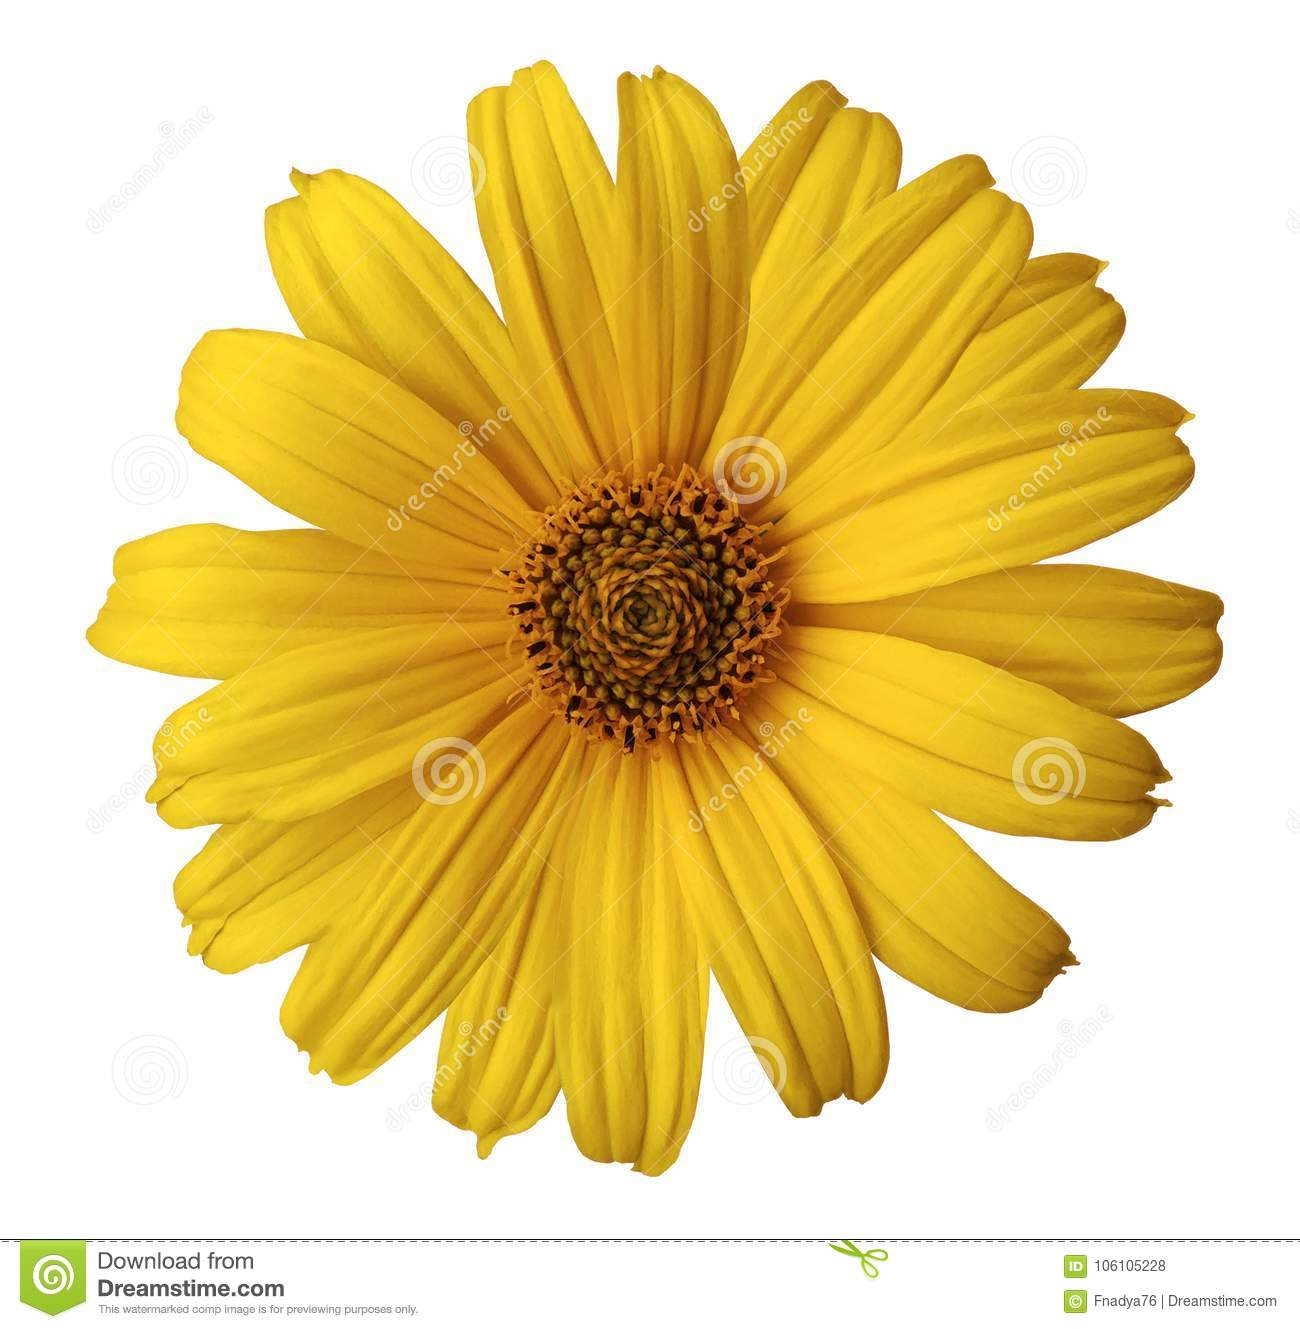 Yellow daisy flower on a white isolated background with clipping path. Flower for design, texture, postcard, wrapper. Closeup.